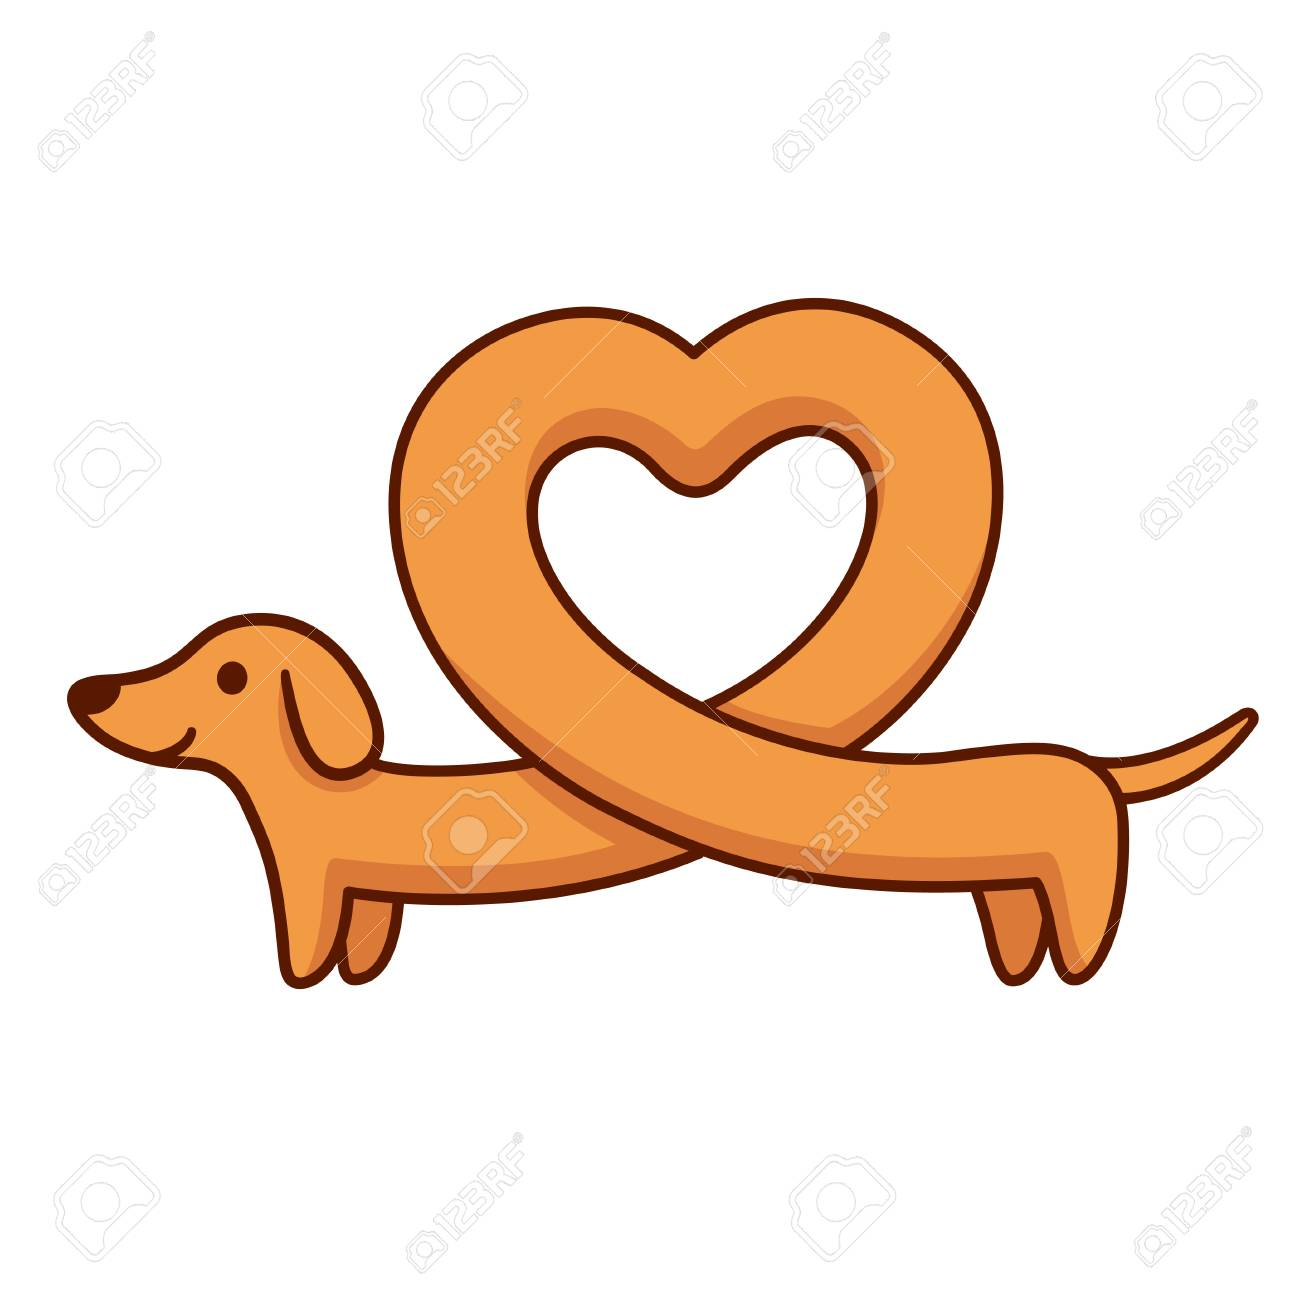 hight resolution of cute cartoon dachshund with heart shaped body funny long wiener dog st valentines